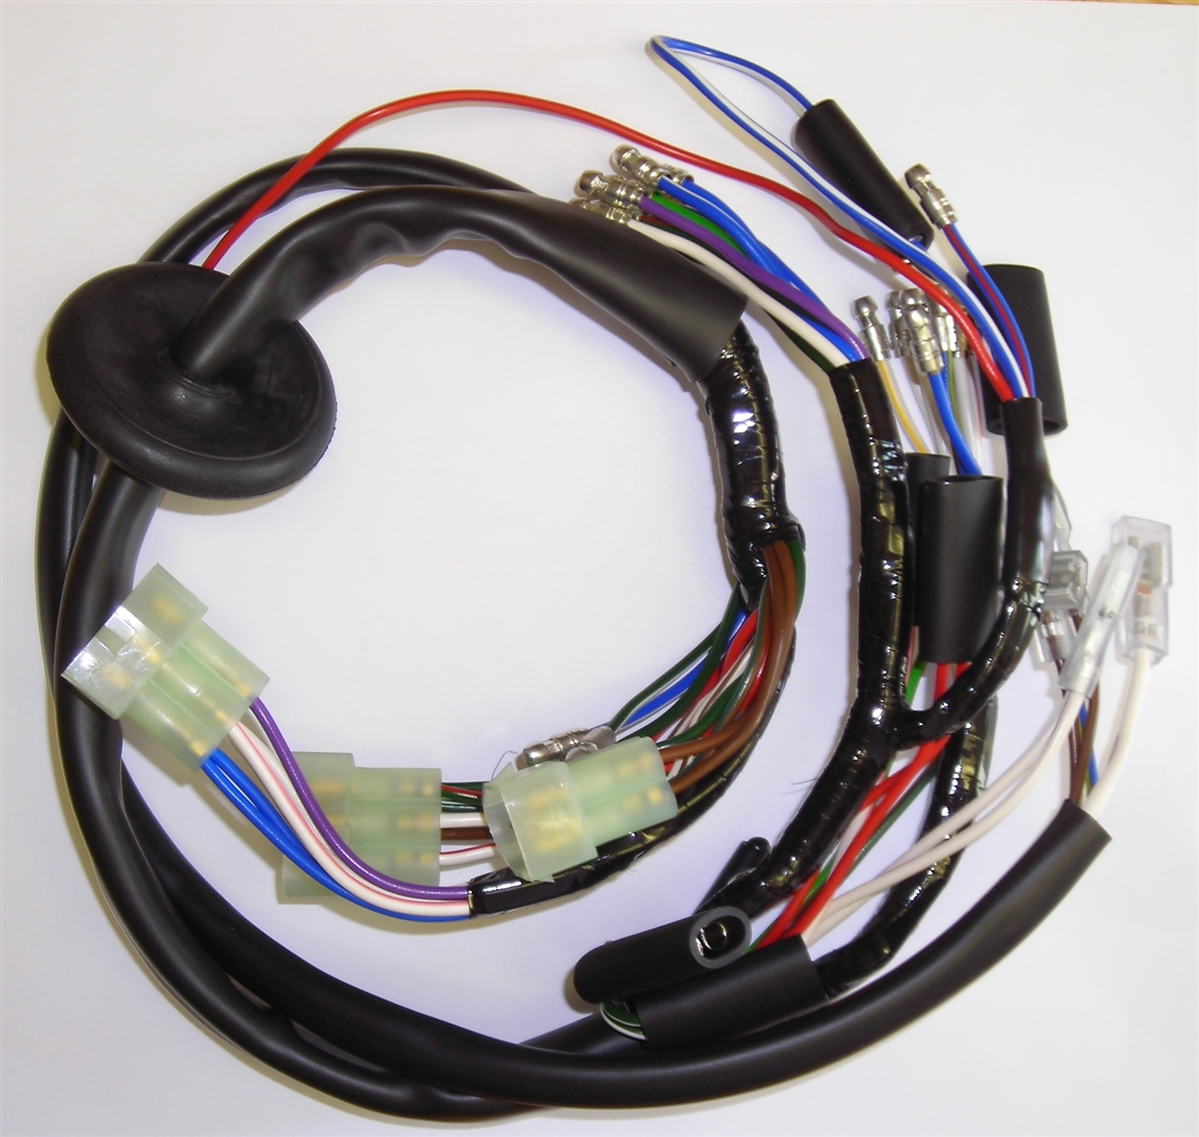 MC116PP 2?1374671892 commando 850cc mk3 motorcycle headlamp wiring harness headlamp wiring harness at panicattacktreatment.co